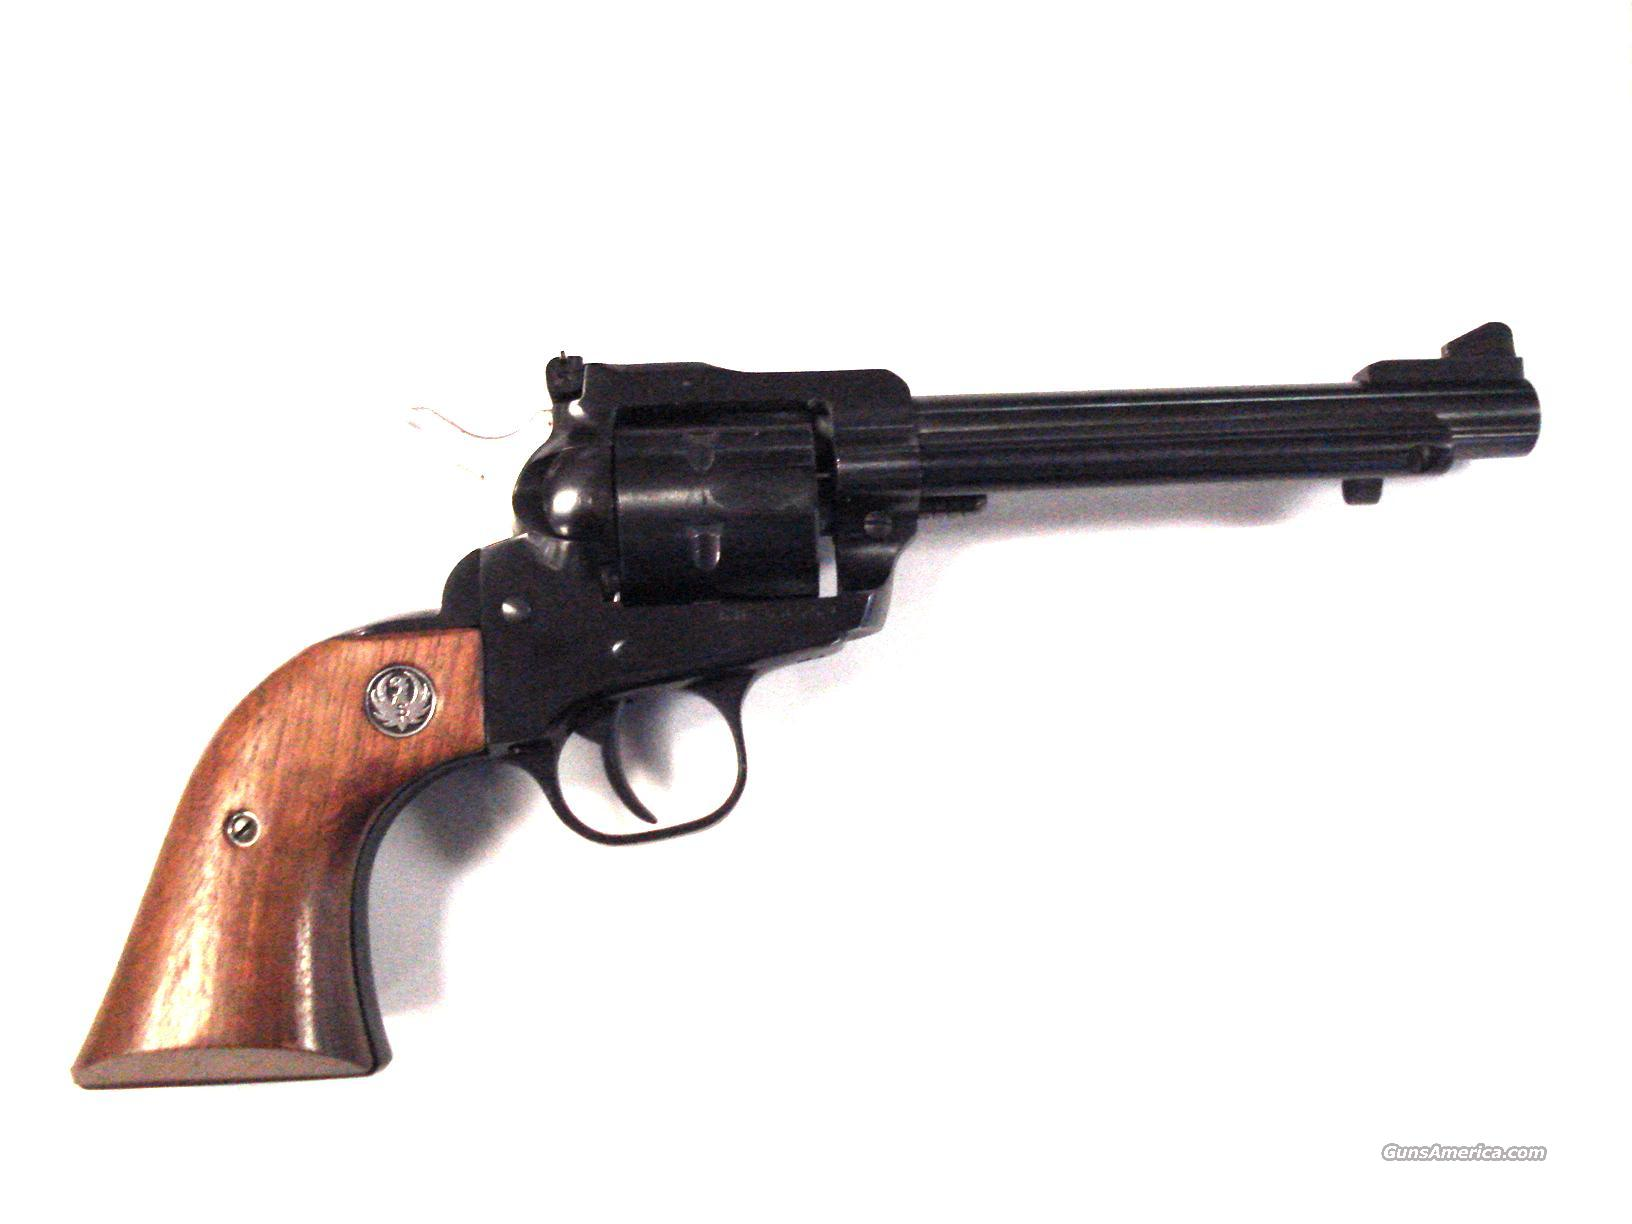 "RUGER NEW MODEL SINGLE SIX 5.5"" .22 SA REVOLVER  Guns > Pistols > Ruger Single Action Revolvers > Single Six Type"